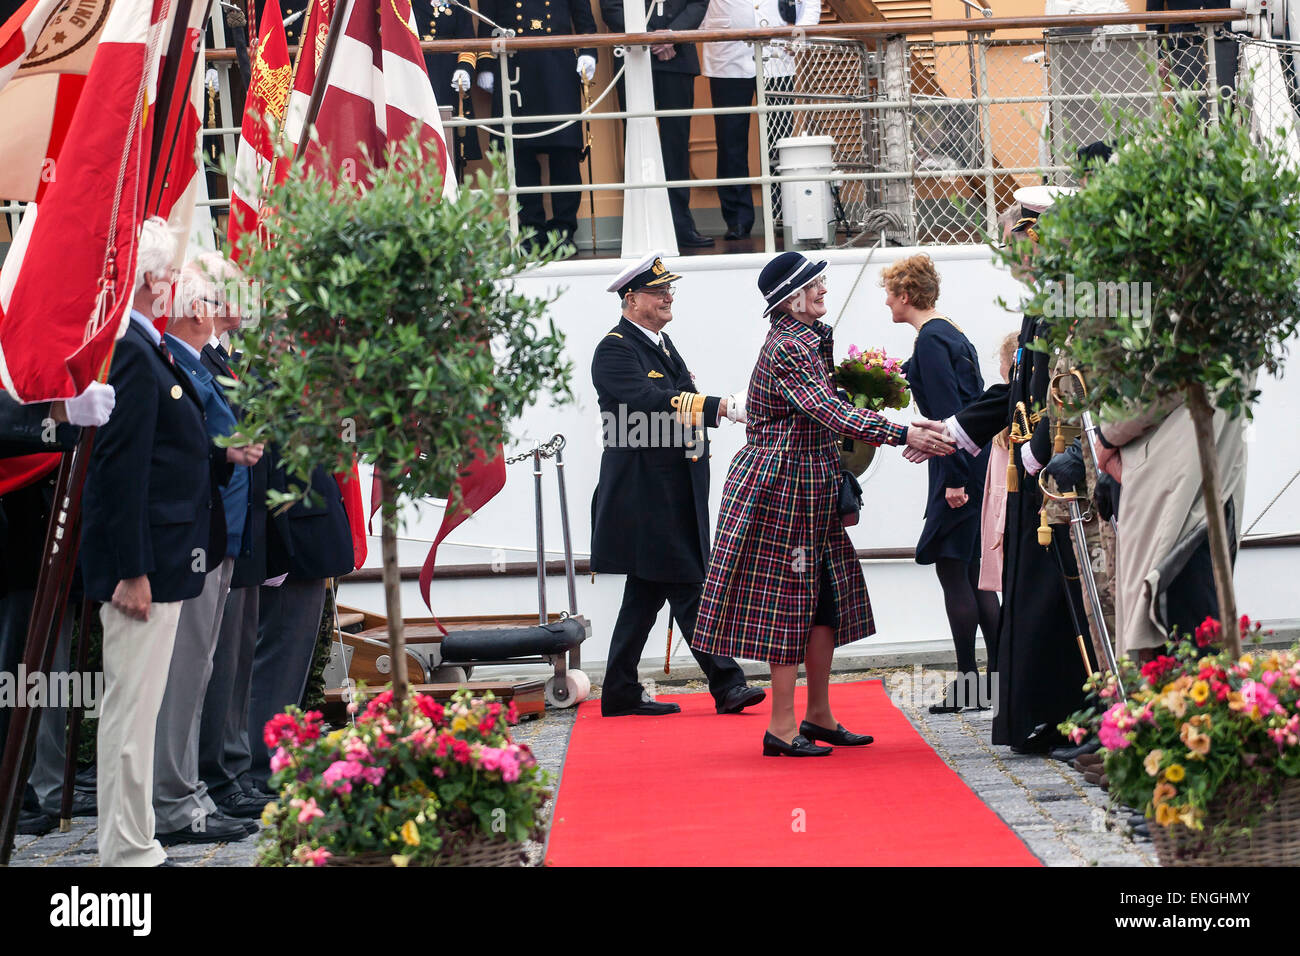 Helsingore, Denmark. 5th May, 2015. H. M. Queen Margrethe and Prince Consort Henrik has arrived to Helsingore onboard - Stock Image